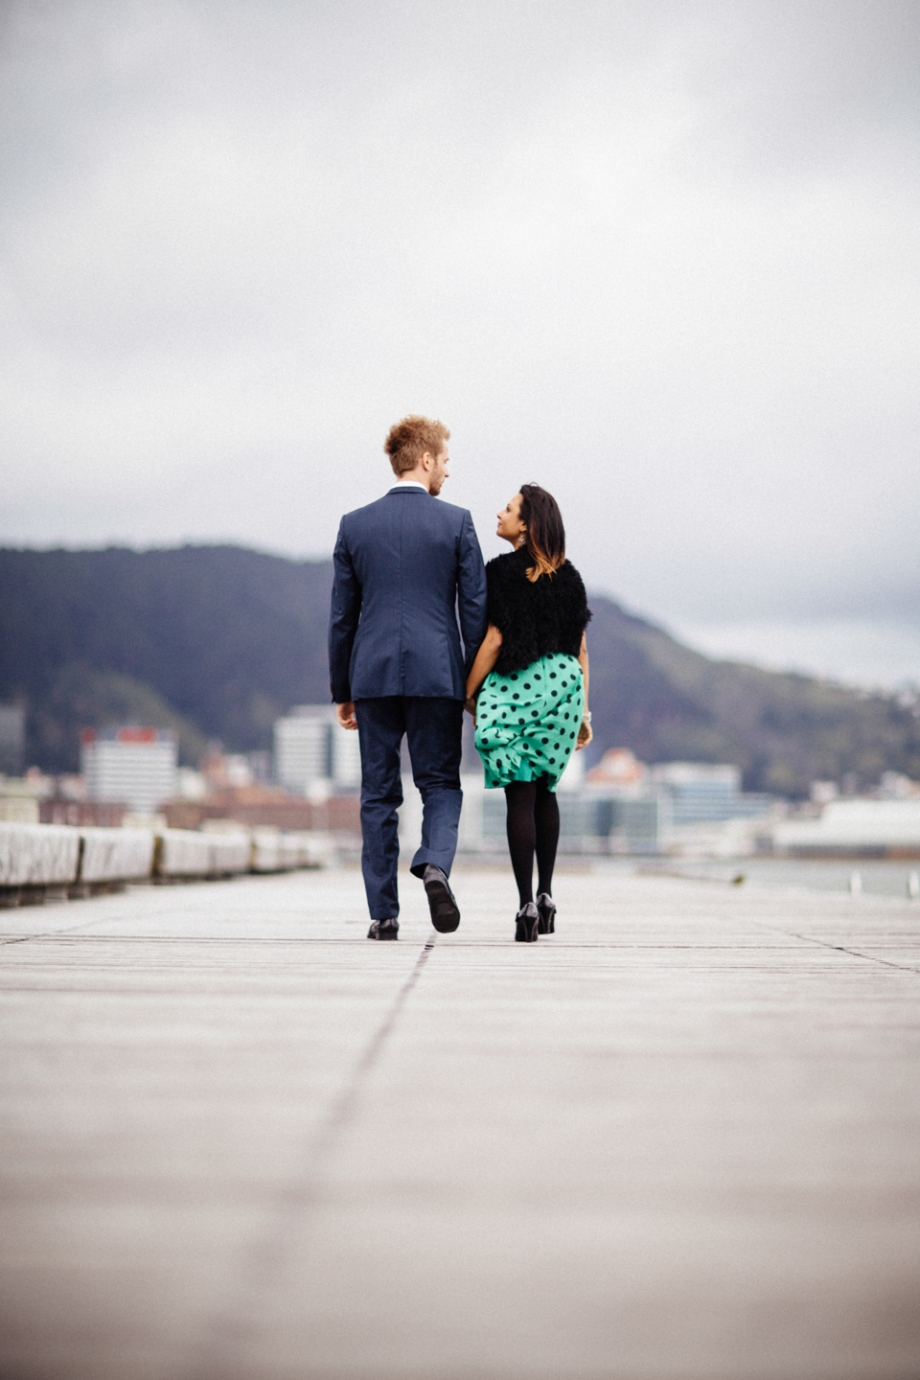 Wellington Waterfront Jetty Engagement Photography